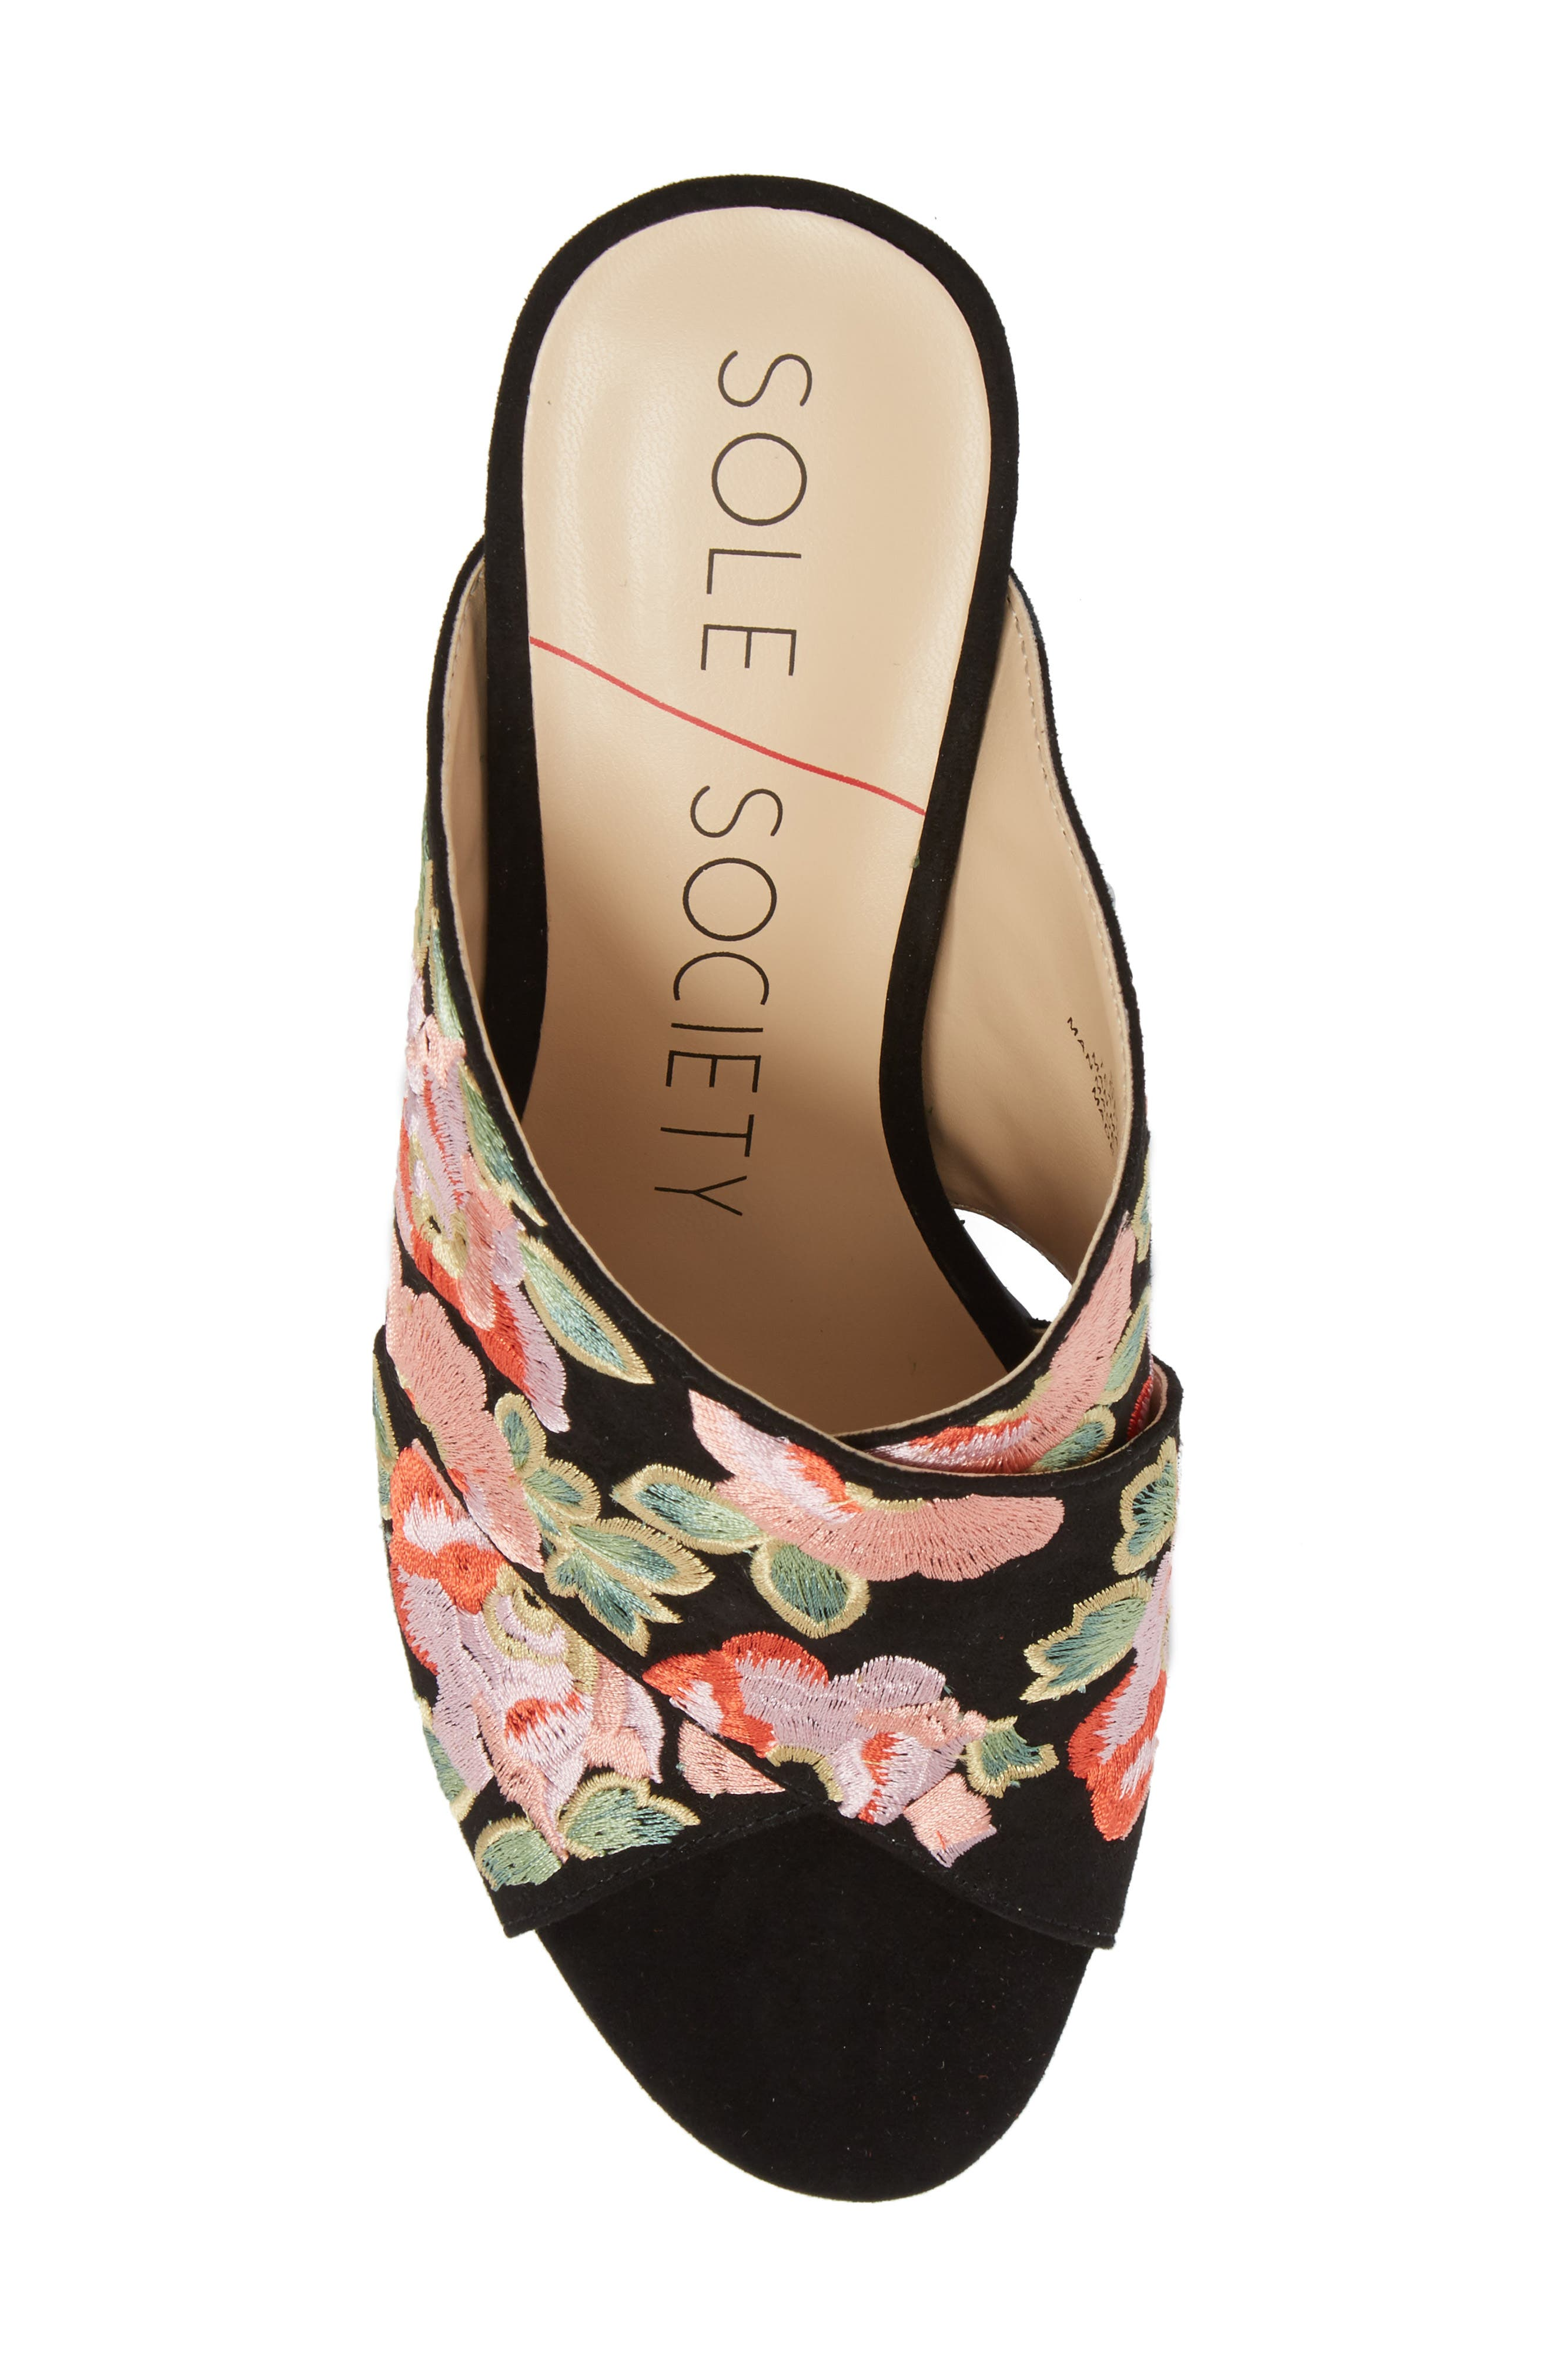 Luella Flower Embroidered Slide,                             Alternate thumbnail 5, color,                             Black/ Coral Multi Embroidery